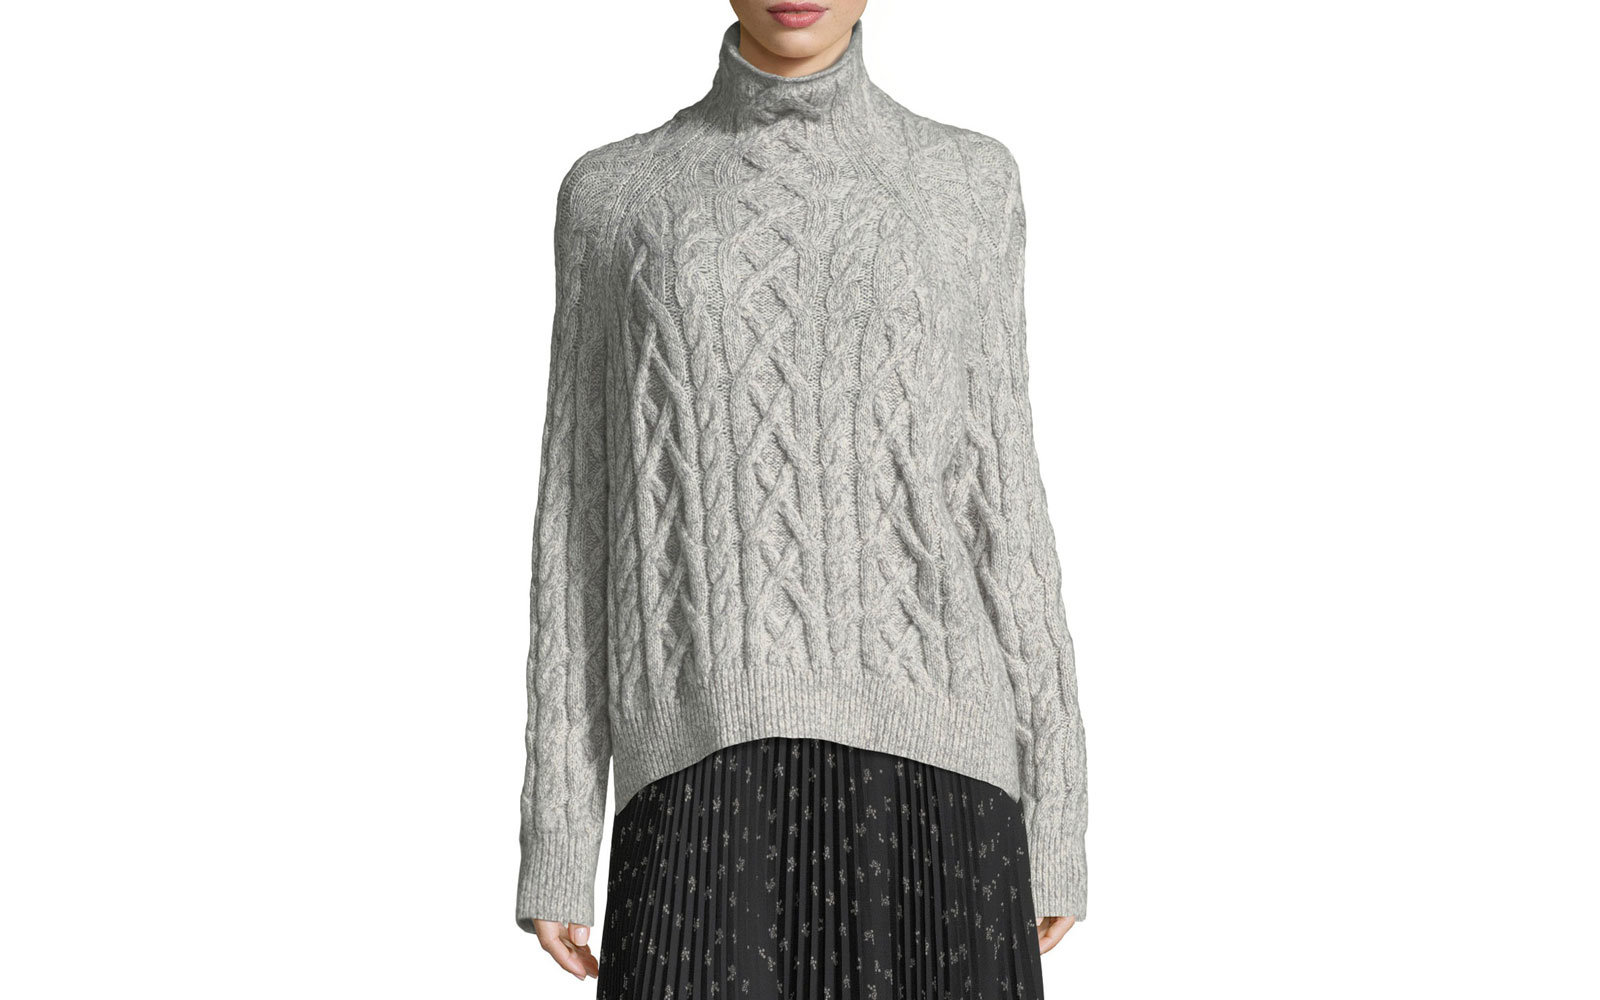 Vince's Oversized Cable-Knit Turtleneck Sweater